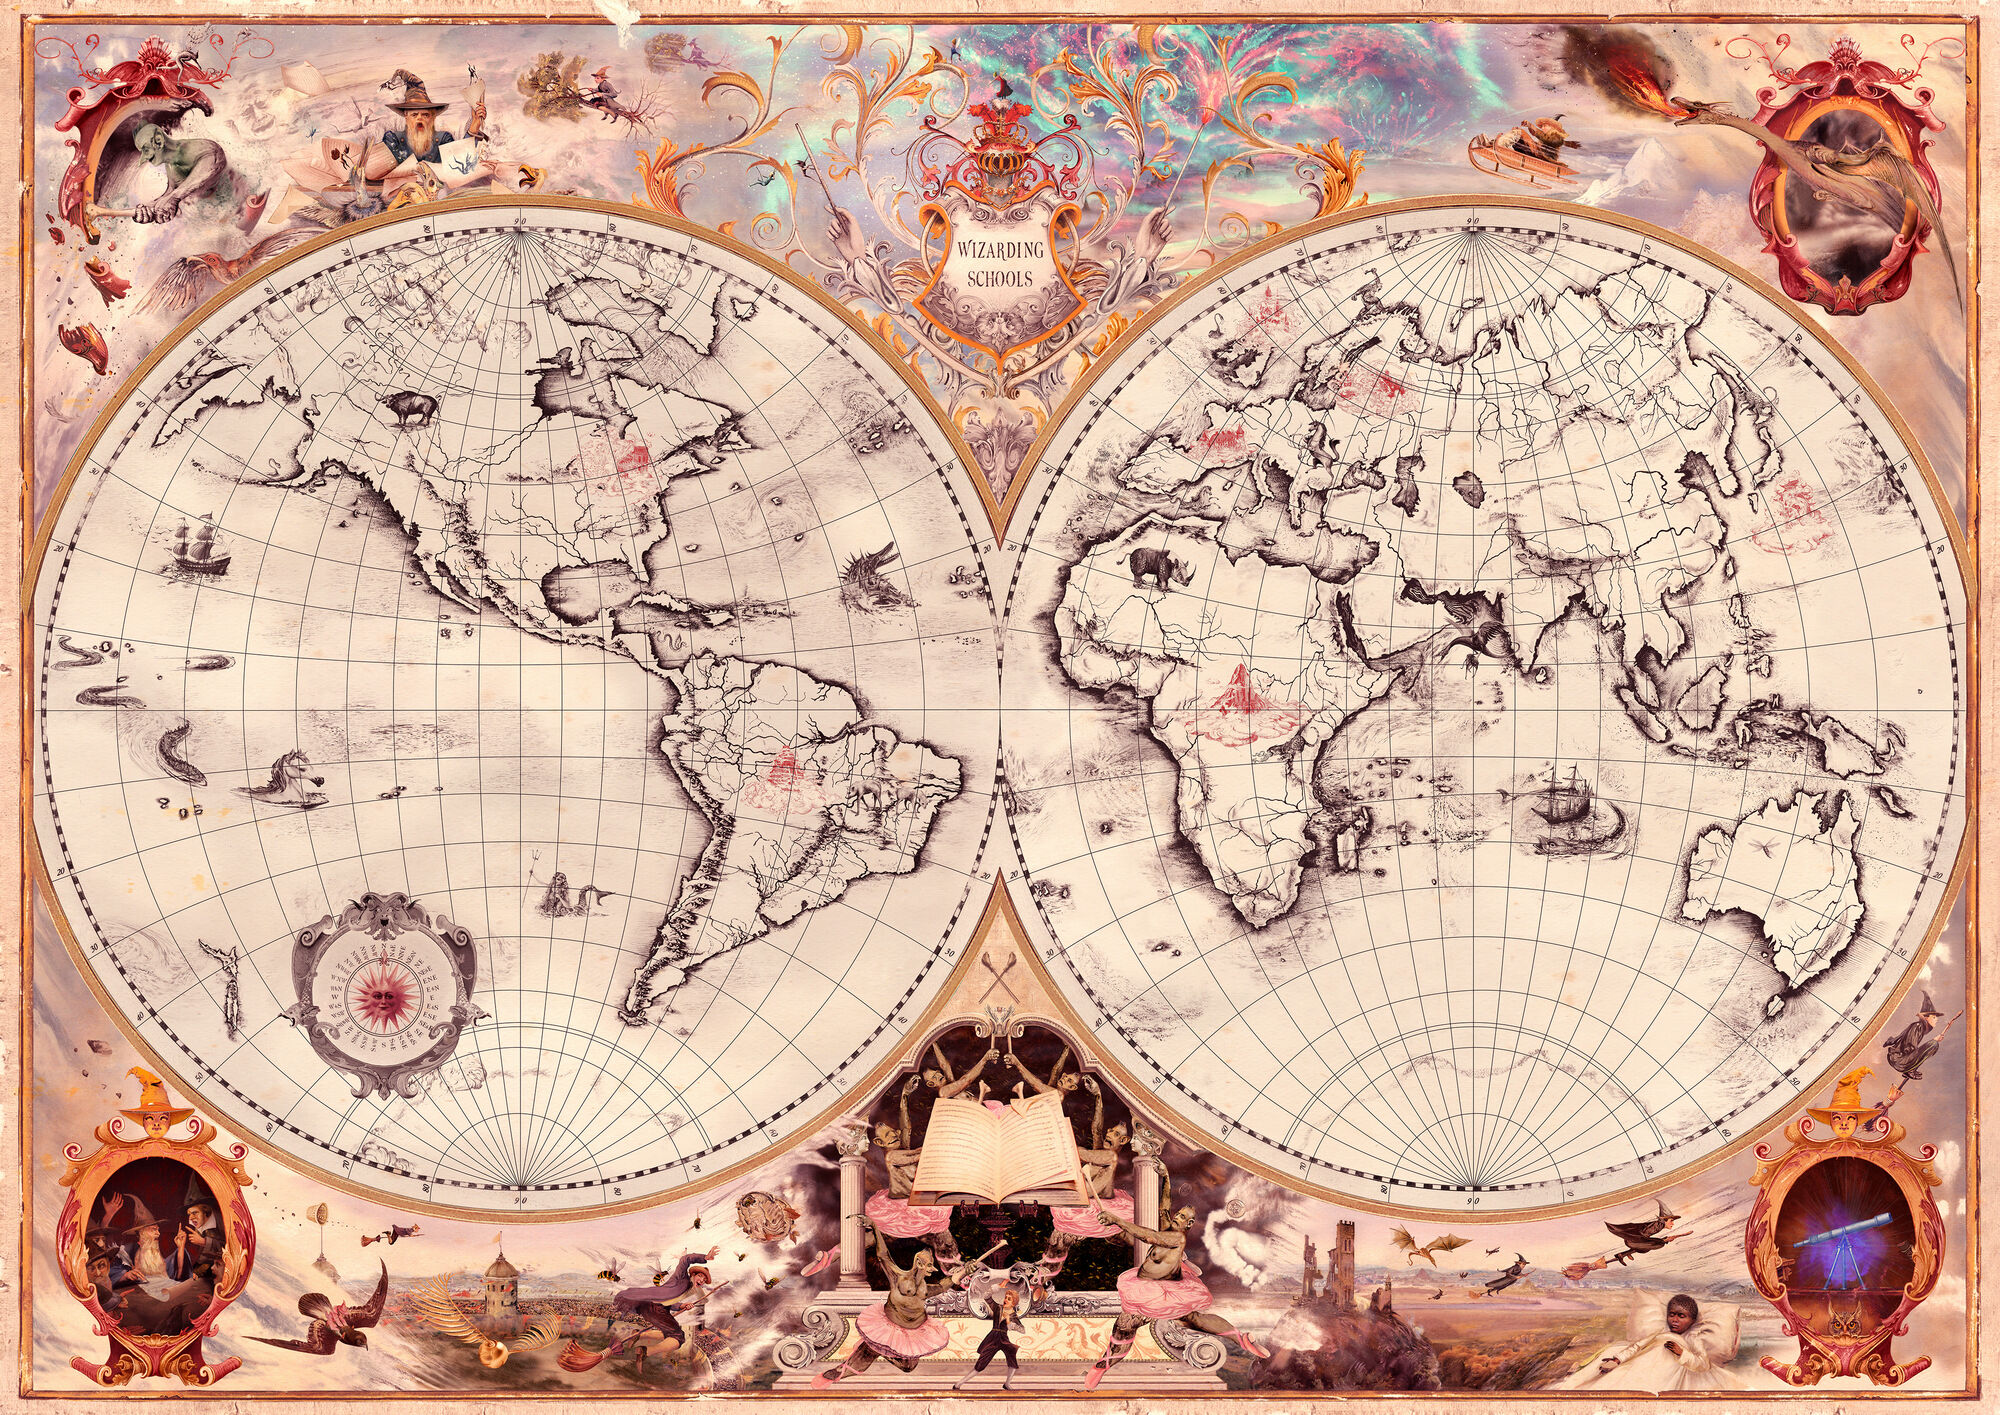 Wizarding | Harry Potter Wiki | FANDOM powered by Wikia on programming language map, fancy map, cauldron map, alchemy map, potter map, silver map, halloween map, freshwater map, honey map, amulet map, ruby map,